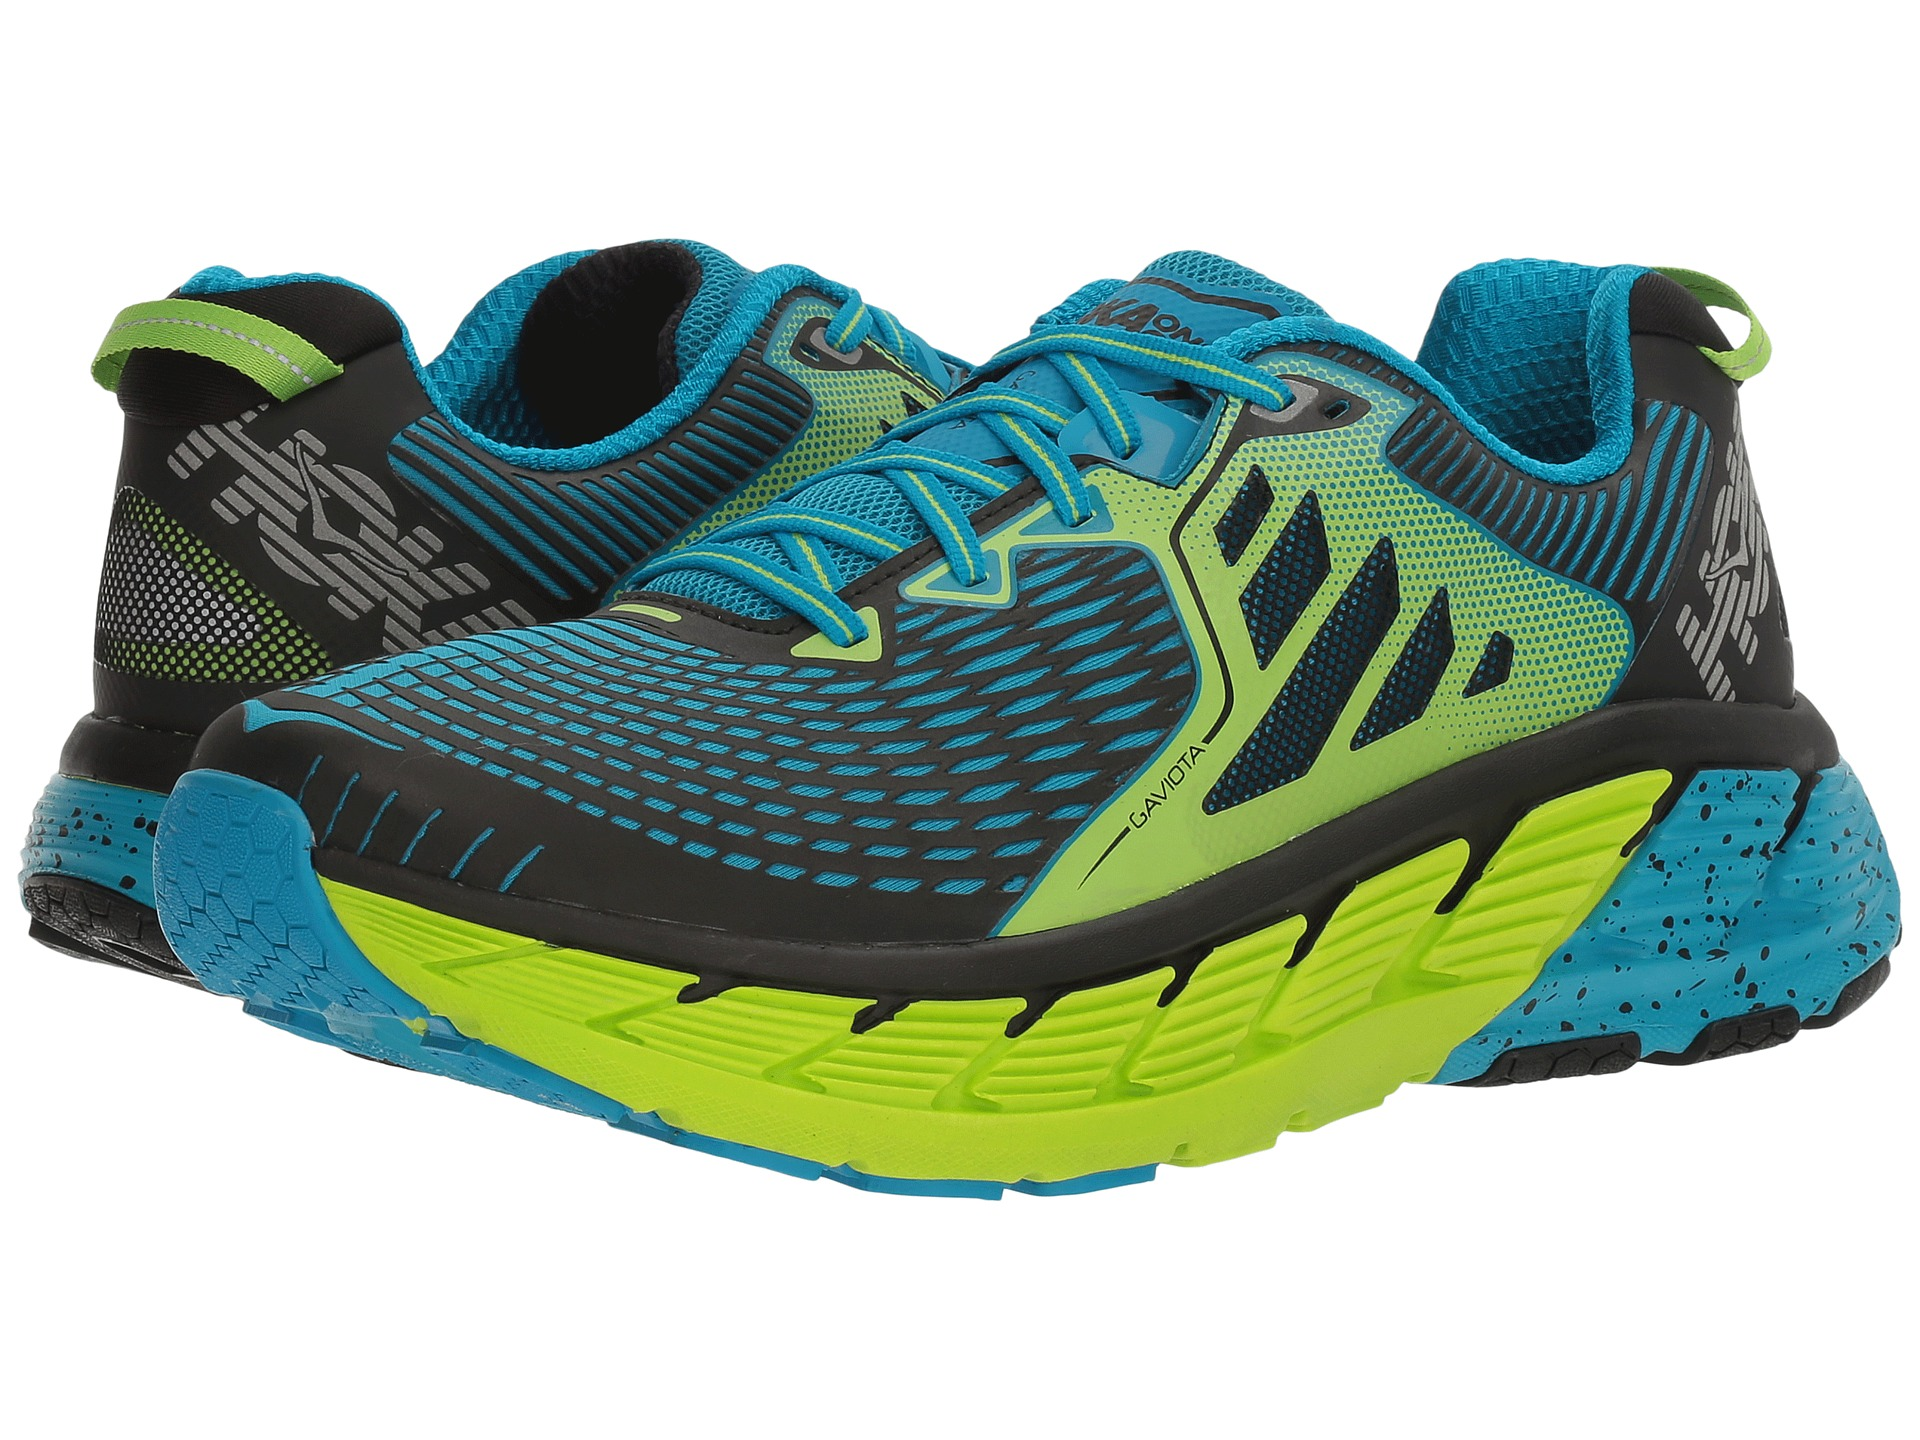 Hoka Running Shoes For Overpronation